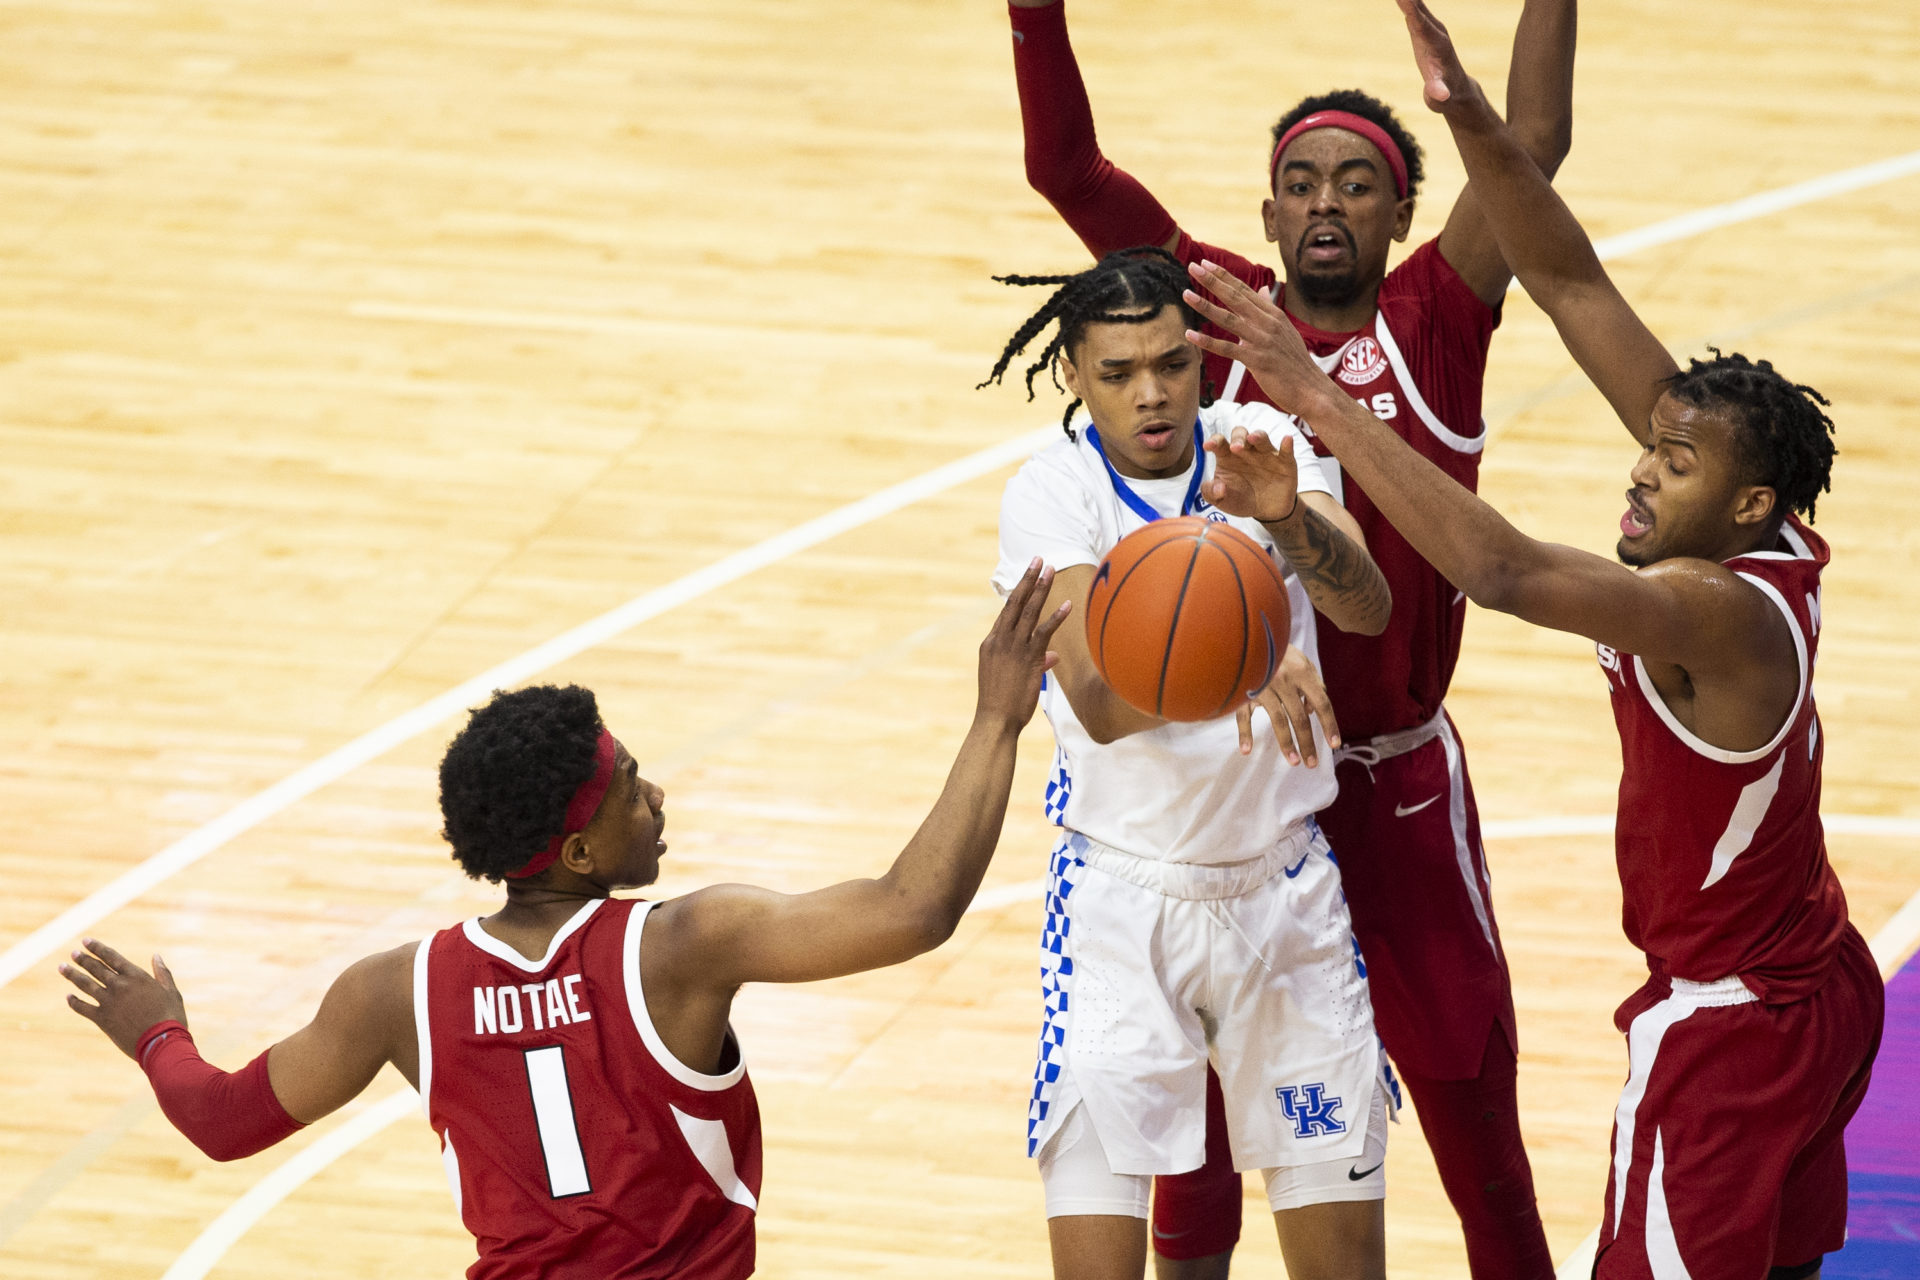 Feb 9, 2021; Lexington, Kentucky, USA; Kentucky Wildcats guard Brandon Boston Jr. (3) passes the ball while being guarded by Arkansas Razorbacks guard JD Notae (1), guard Moses Moody (5) and guard Jalen Tate (11) during the second half of the game at Rupp Arena at Central Bank Center. Mandatory Credit: Arden Barnes-USA TODAY Sports